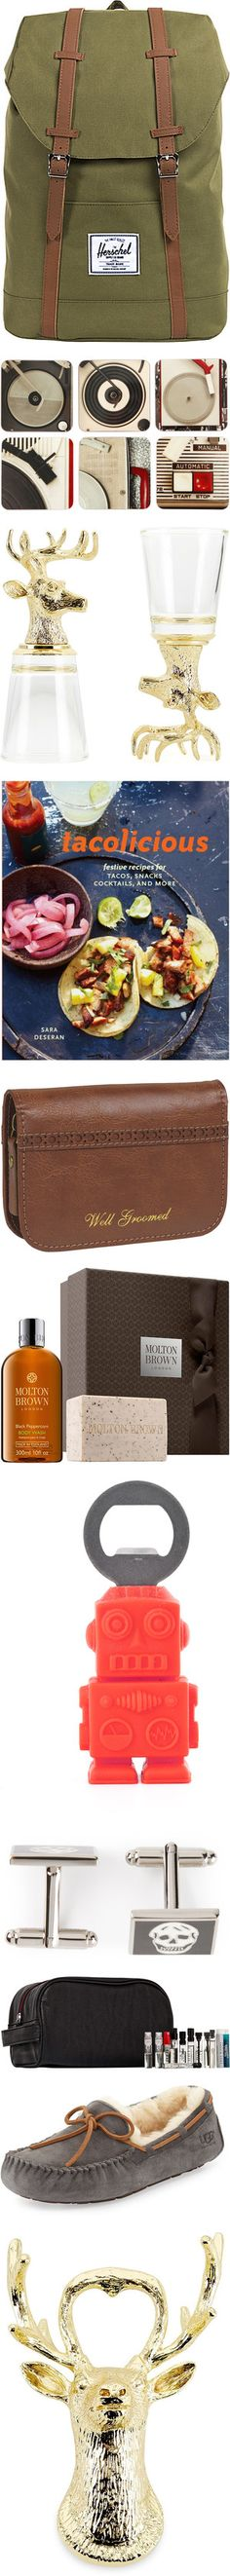 """""""Cool Gifts for Him"""" by polyvore-topics ❤ liked on Polyvore"""